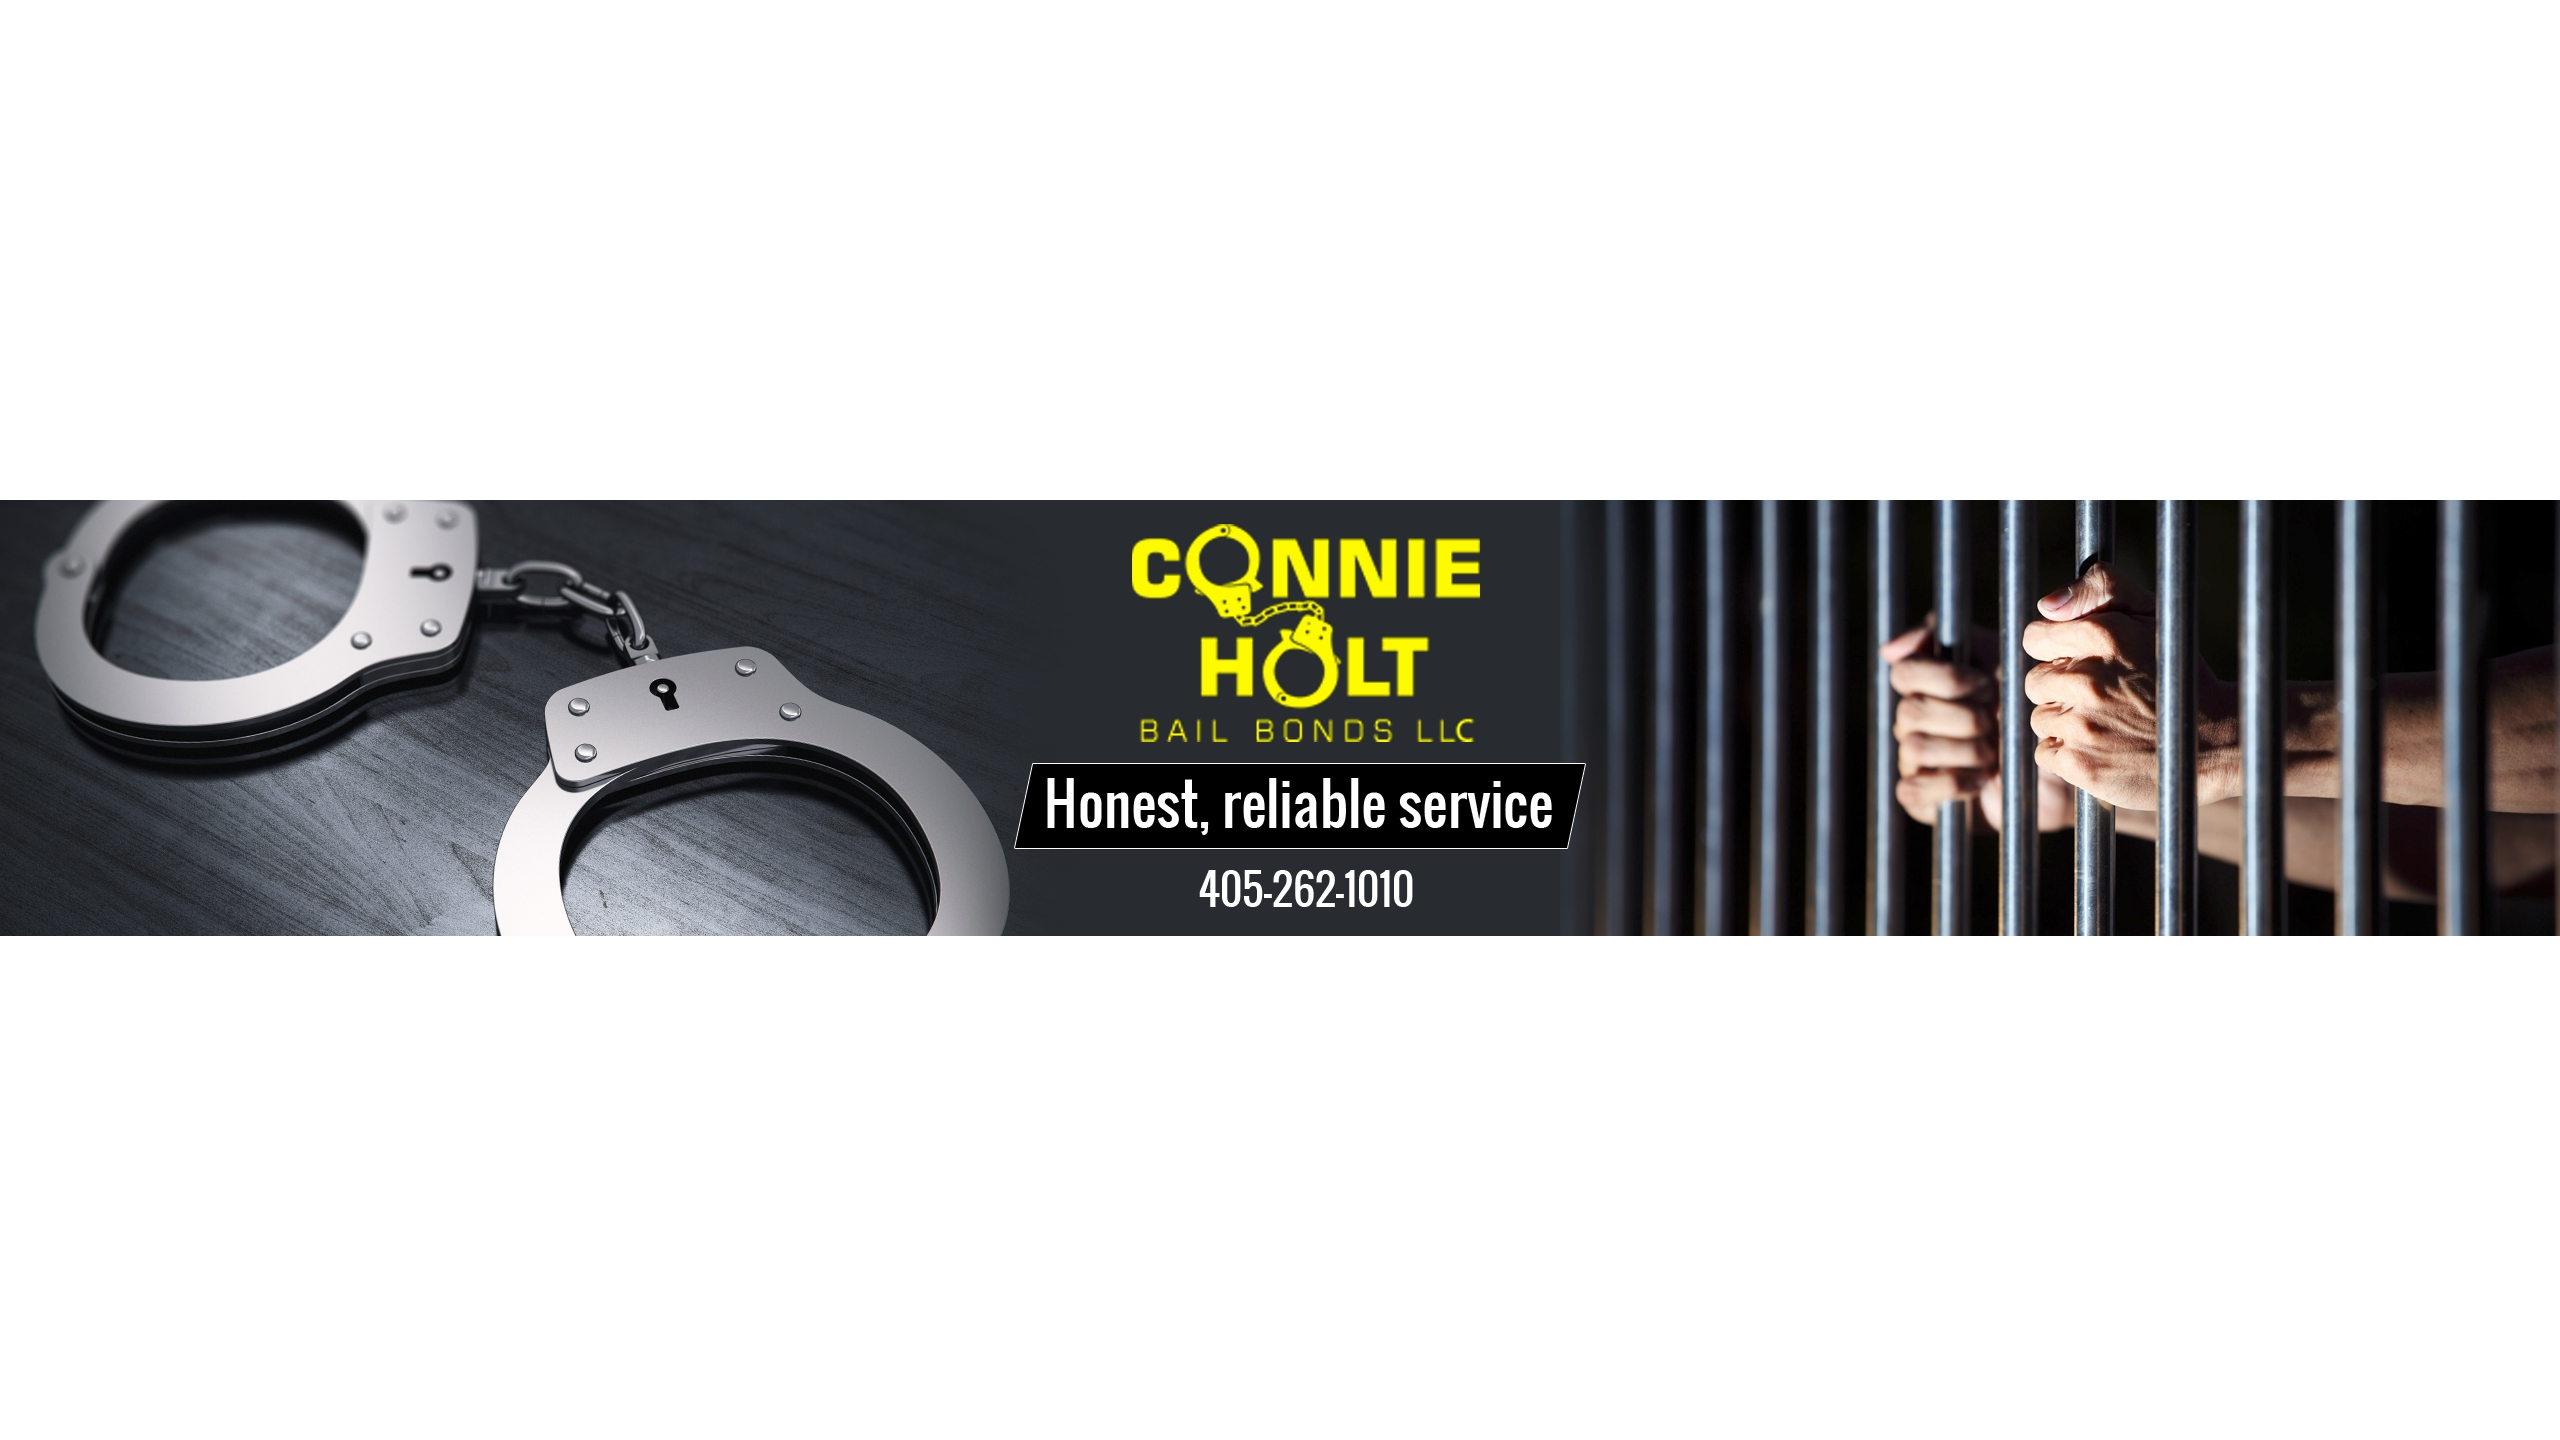 Connie Holt Bail Bonds LLC (@connieholtbailbonds) Cover Image